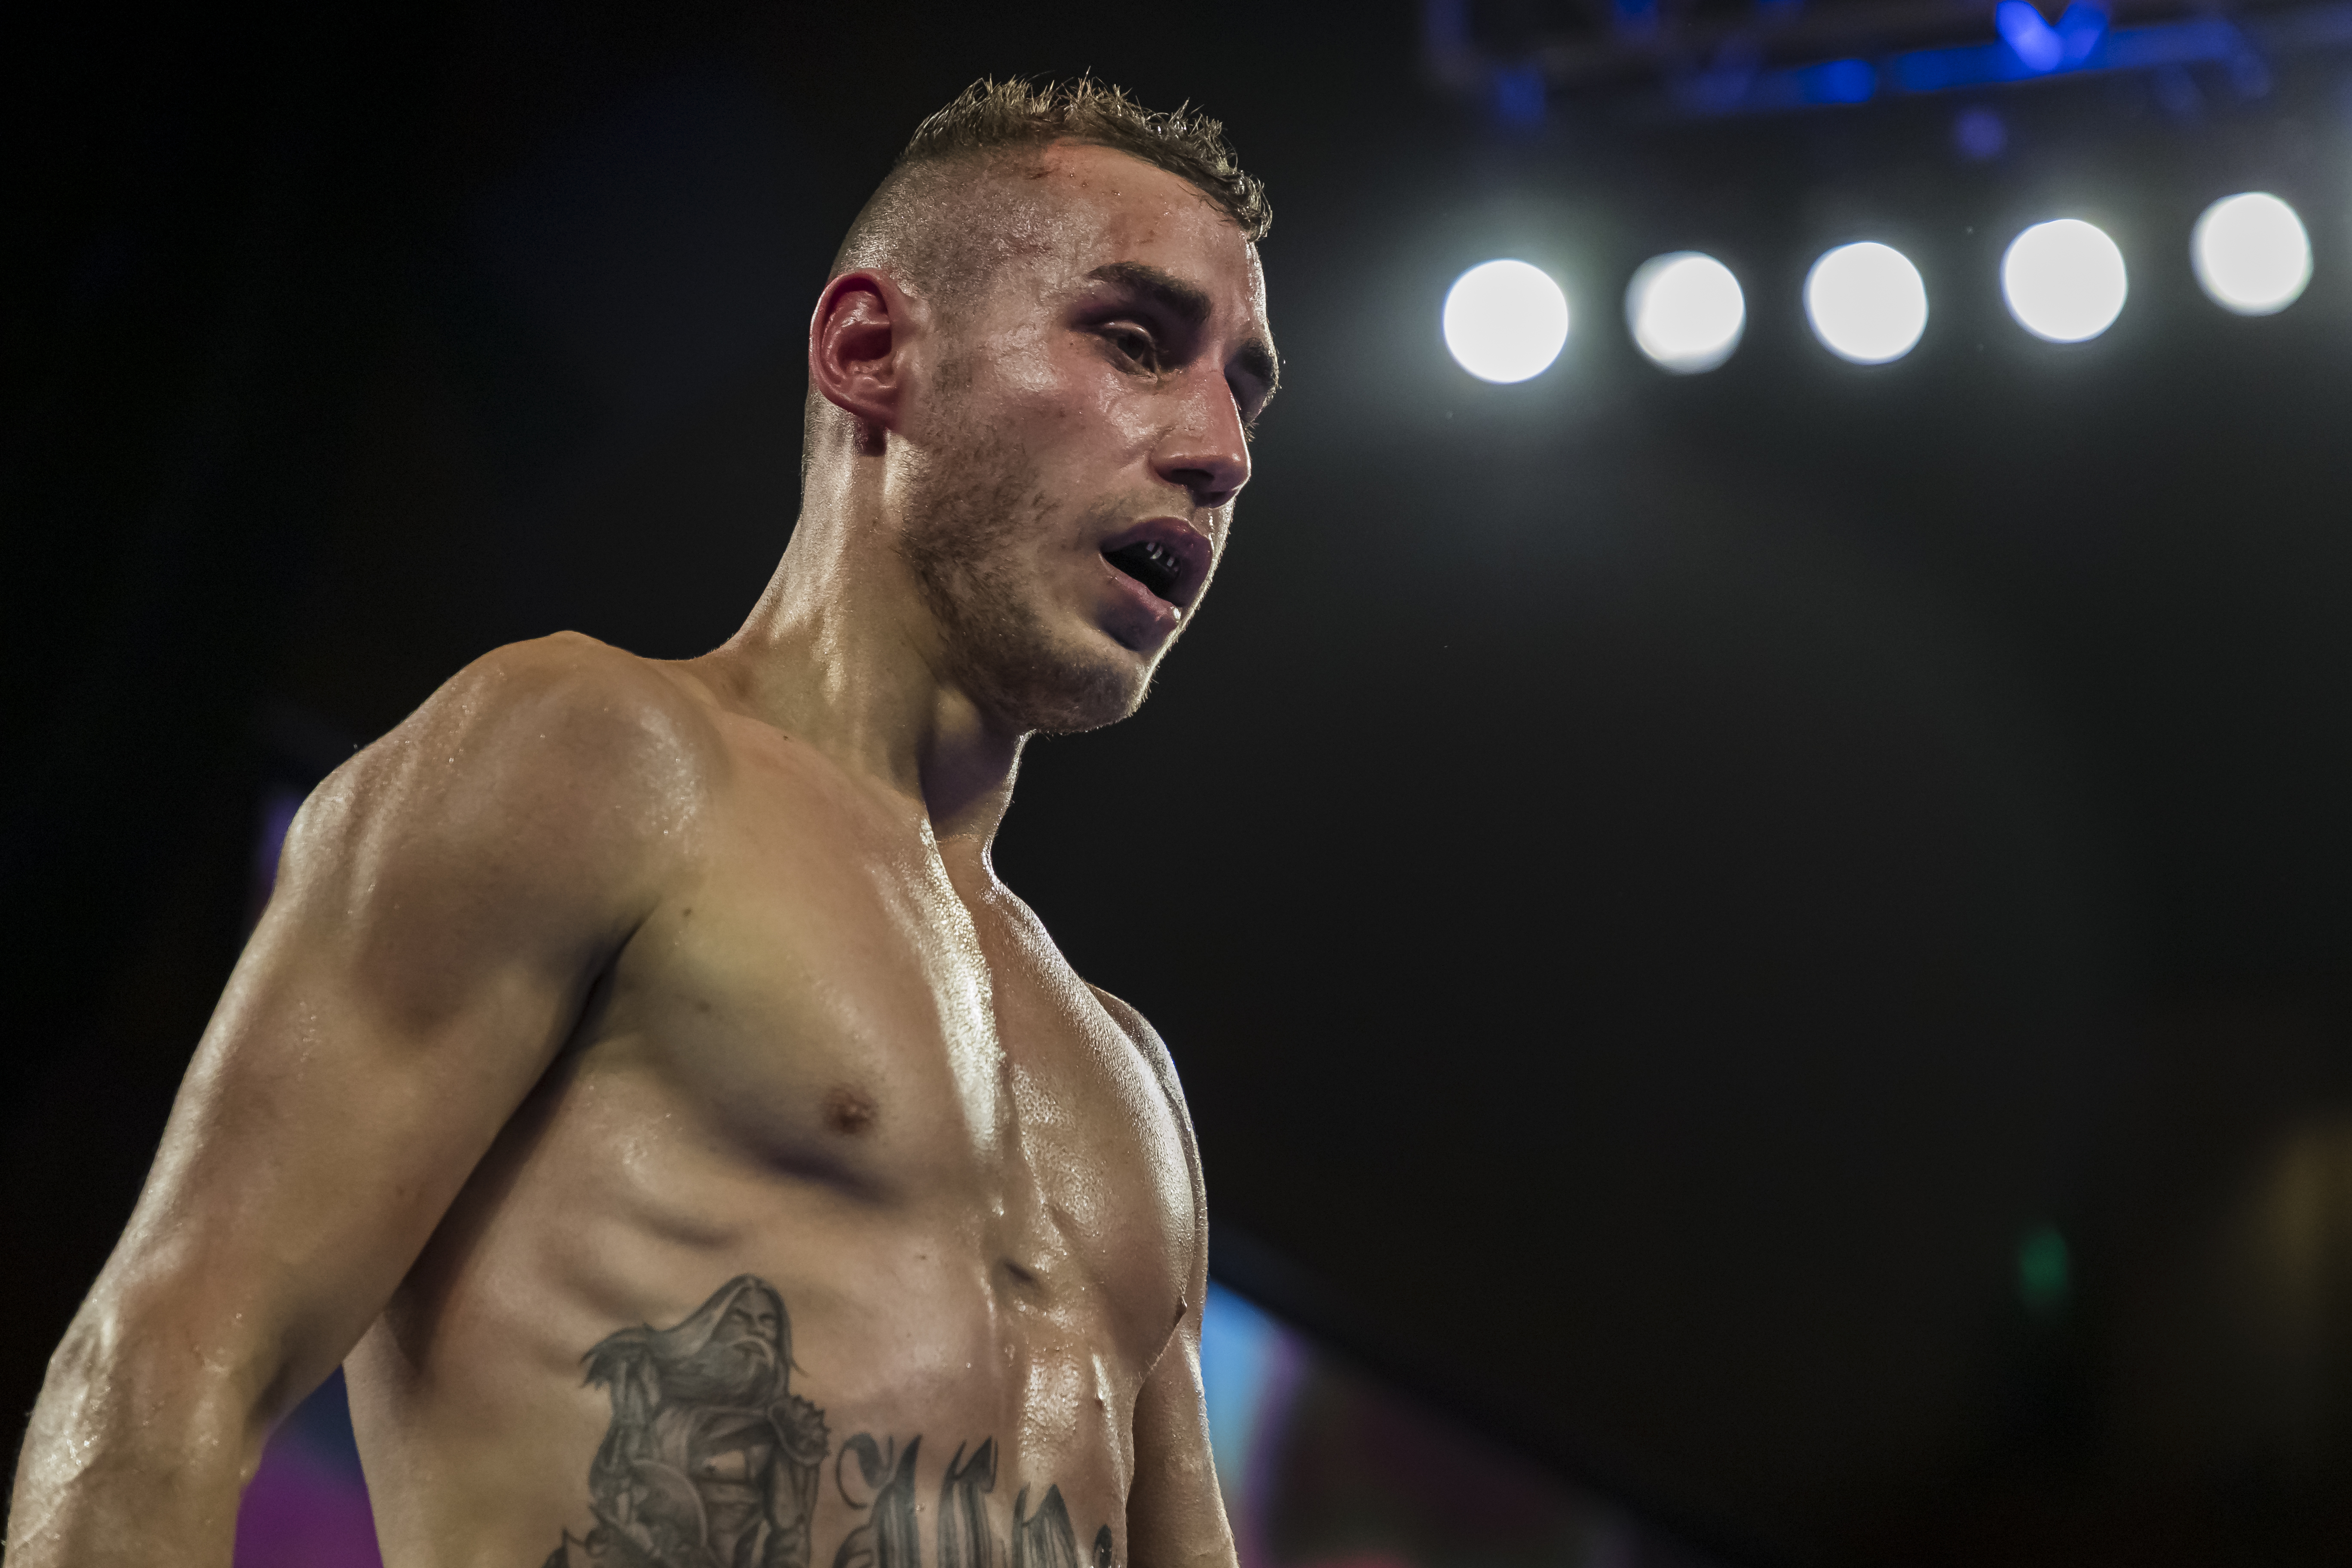 Maxim Dadashev was a successful Russian boxer who had a bright professional future. Dadashev tragically died after an ESPN fight in July 2019.